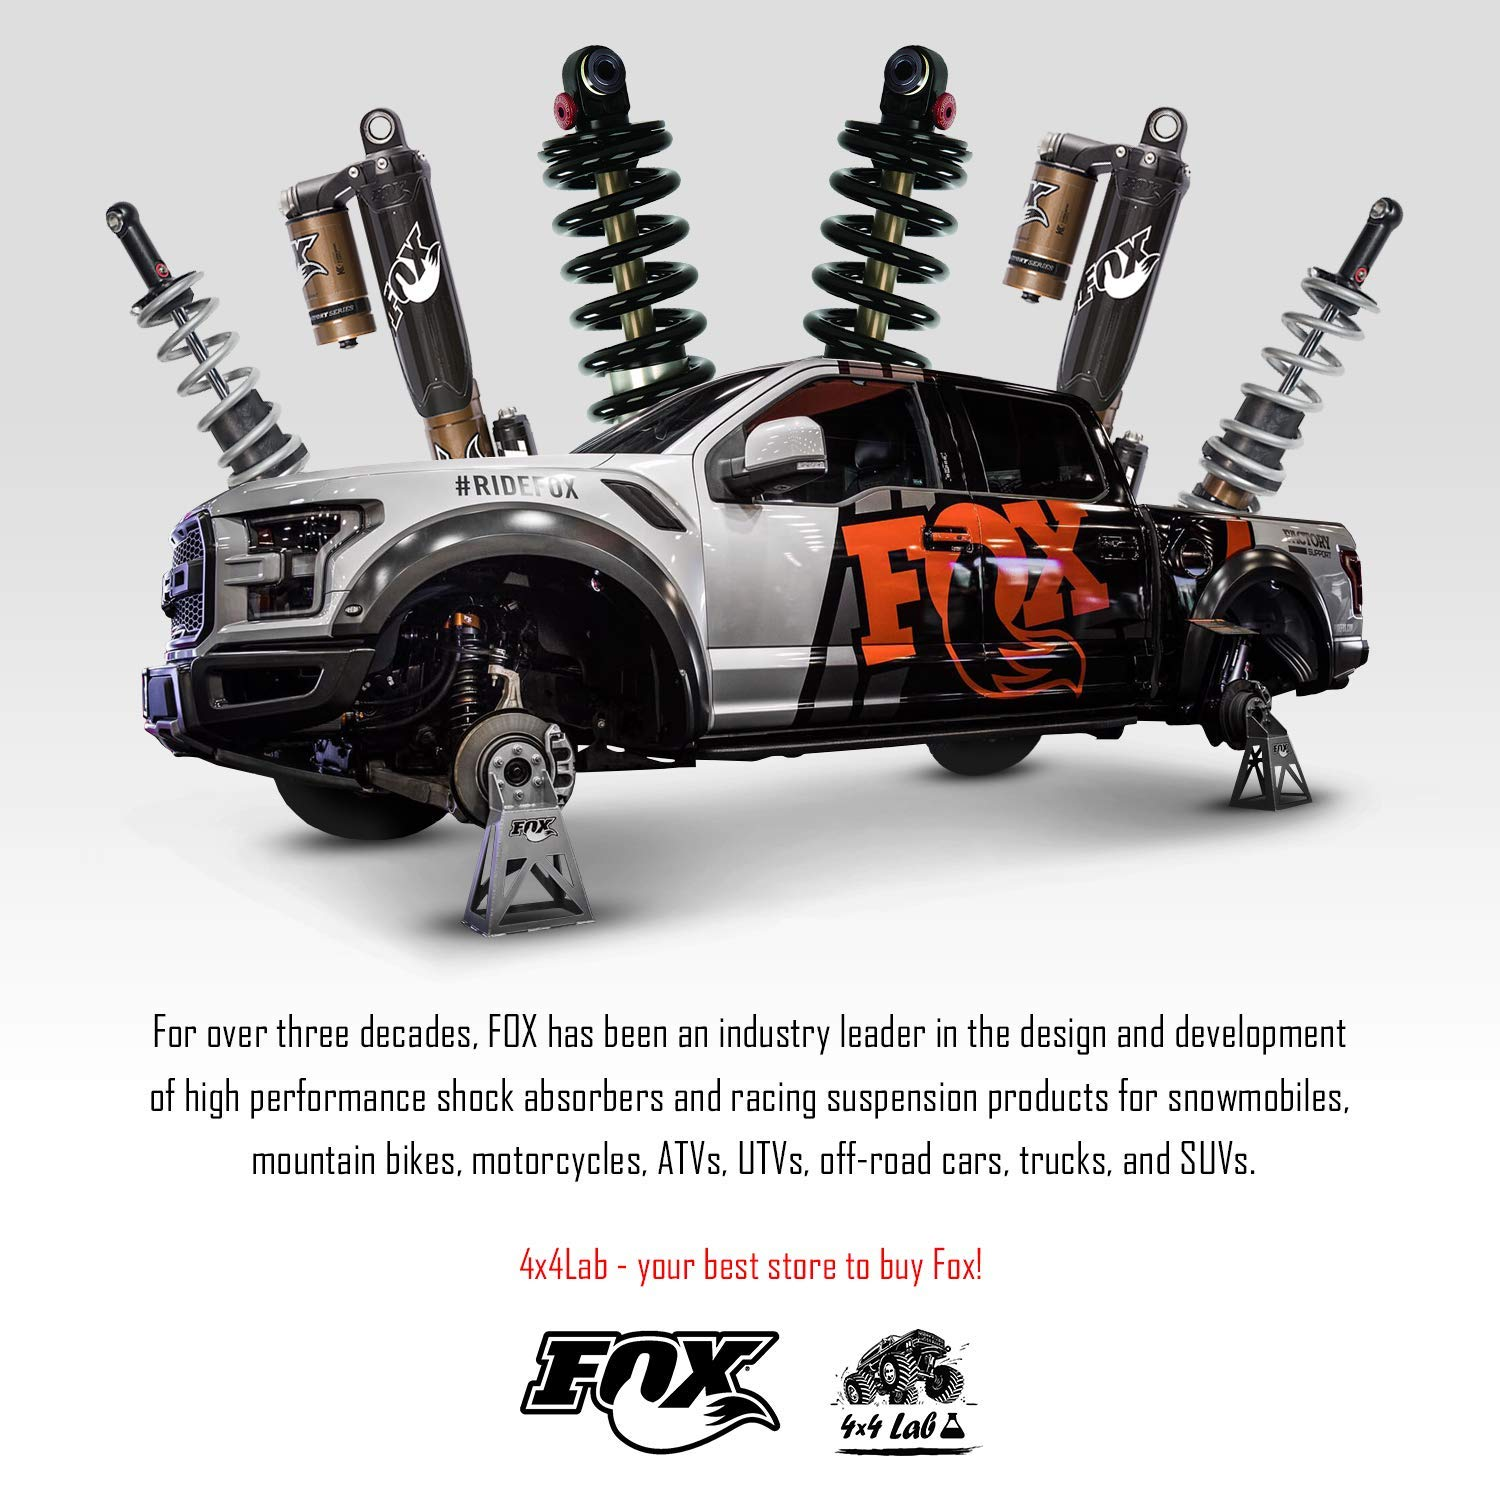 Kit of 2 Fox 2.0 Performance Series Reservoir 4-6 inch Lift Front Shocks for Chevrolet Silverado 2500HD 2001-2010